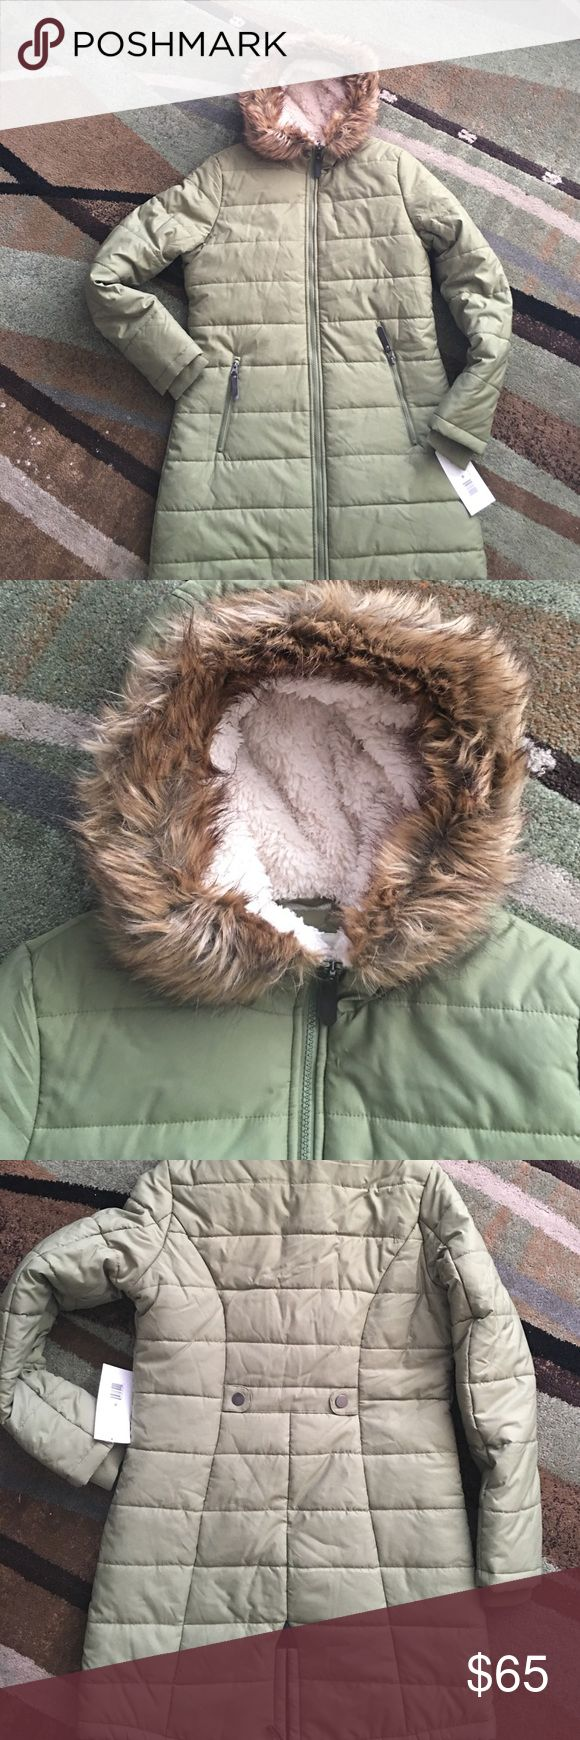 Olive green jacket New condition down jacket with faux fur trim. It's color is olive green fish tail style. Jackets & Coats Puffers